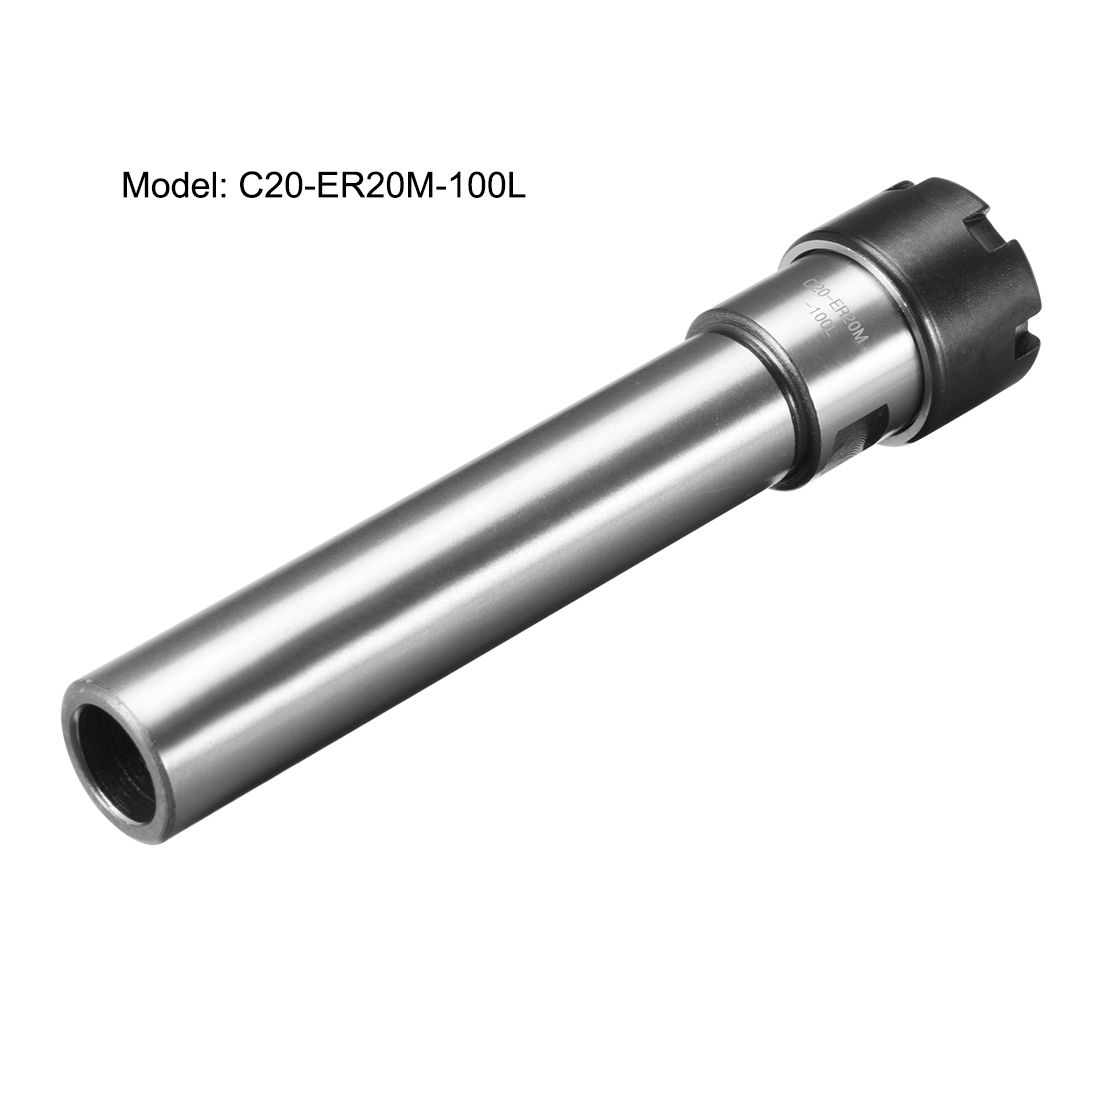 C20 ER20M 100L Collet Chuck Holder Straight Shank for CNC Milling